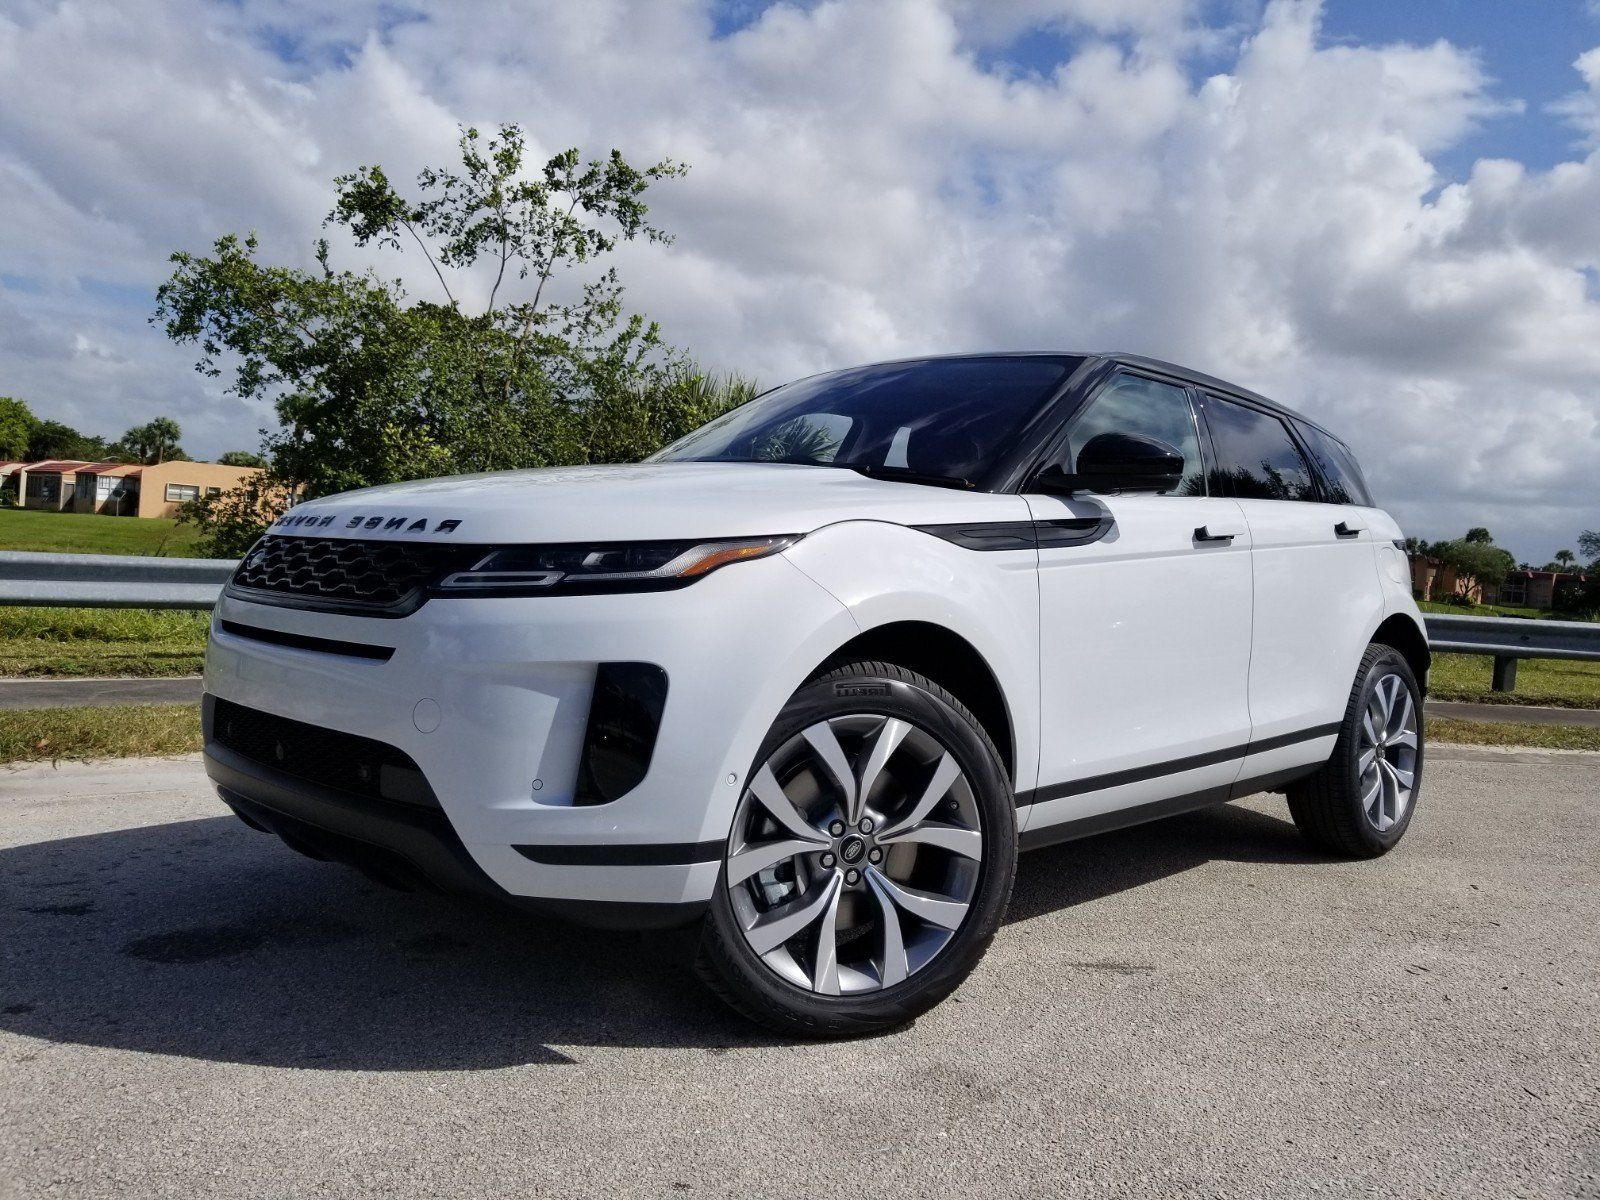 Land Rover Suvs For Sale In West Palm Beach 63 Vehicles In Stock Land Rover Range Rover Evoque Range Rover